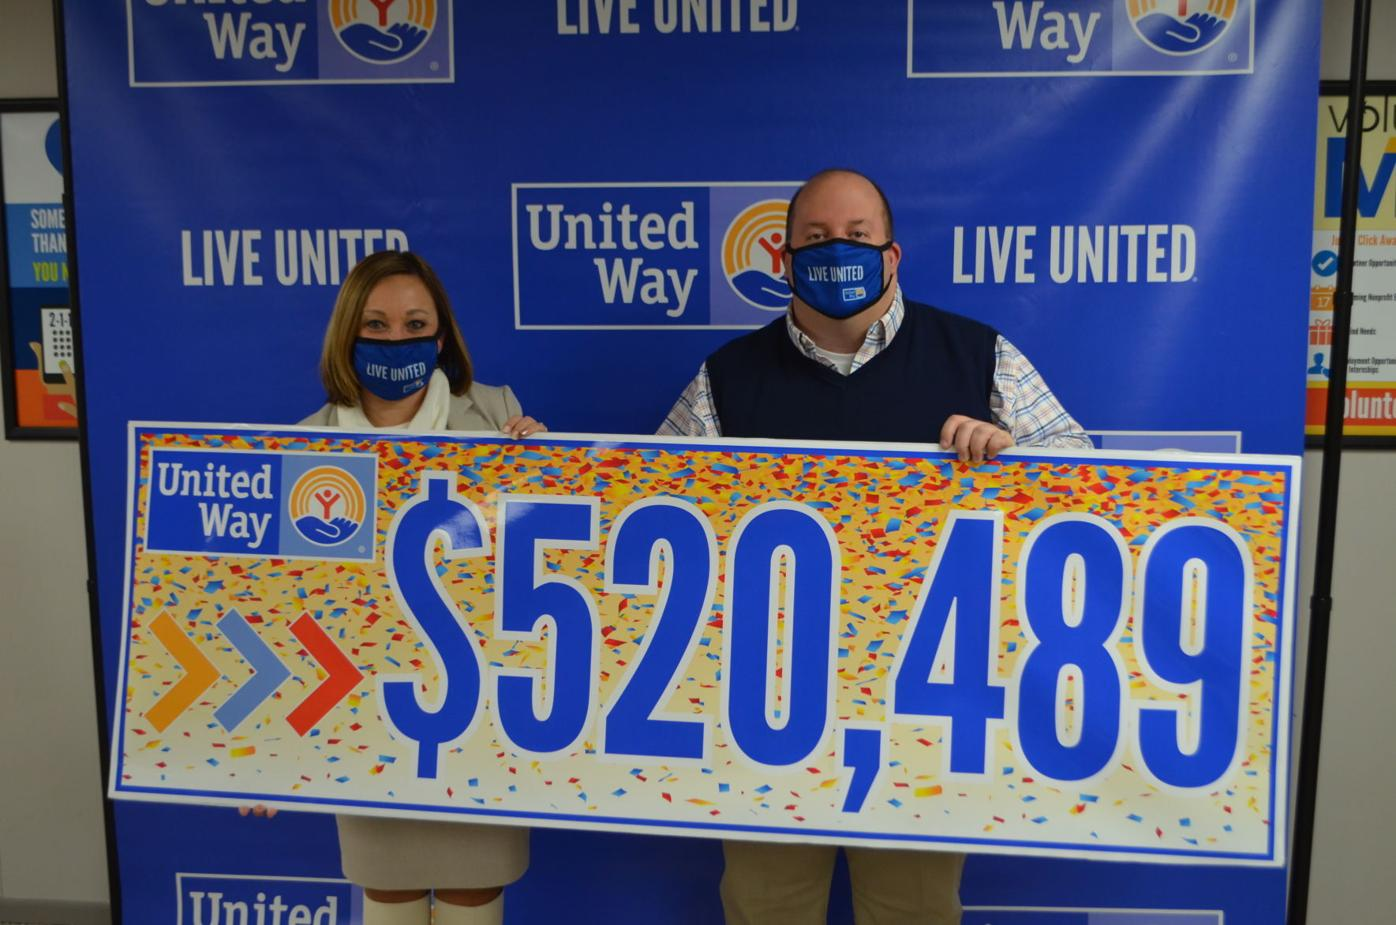 United Way 2020-2021 total